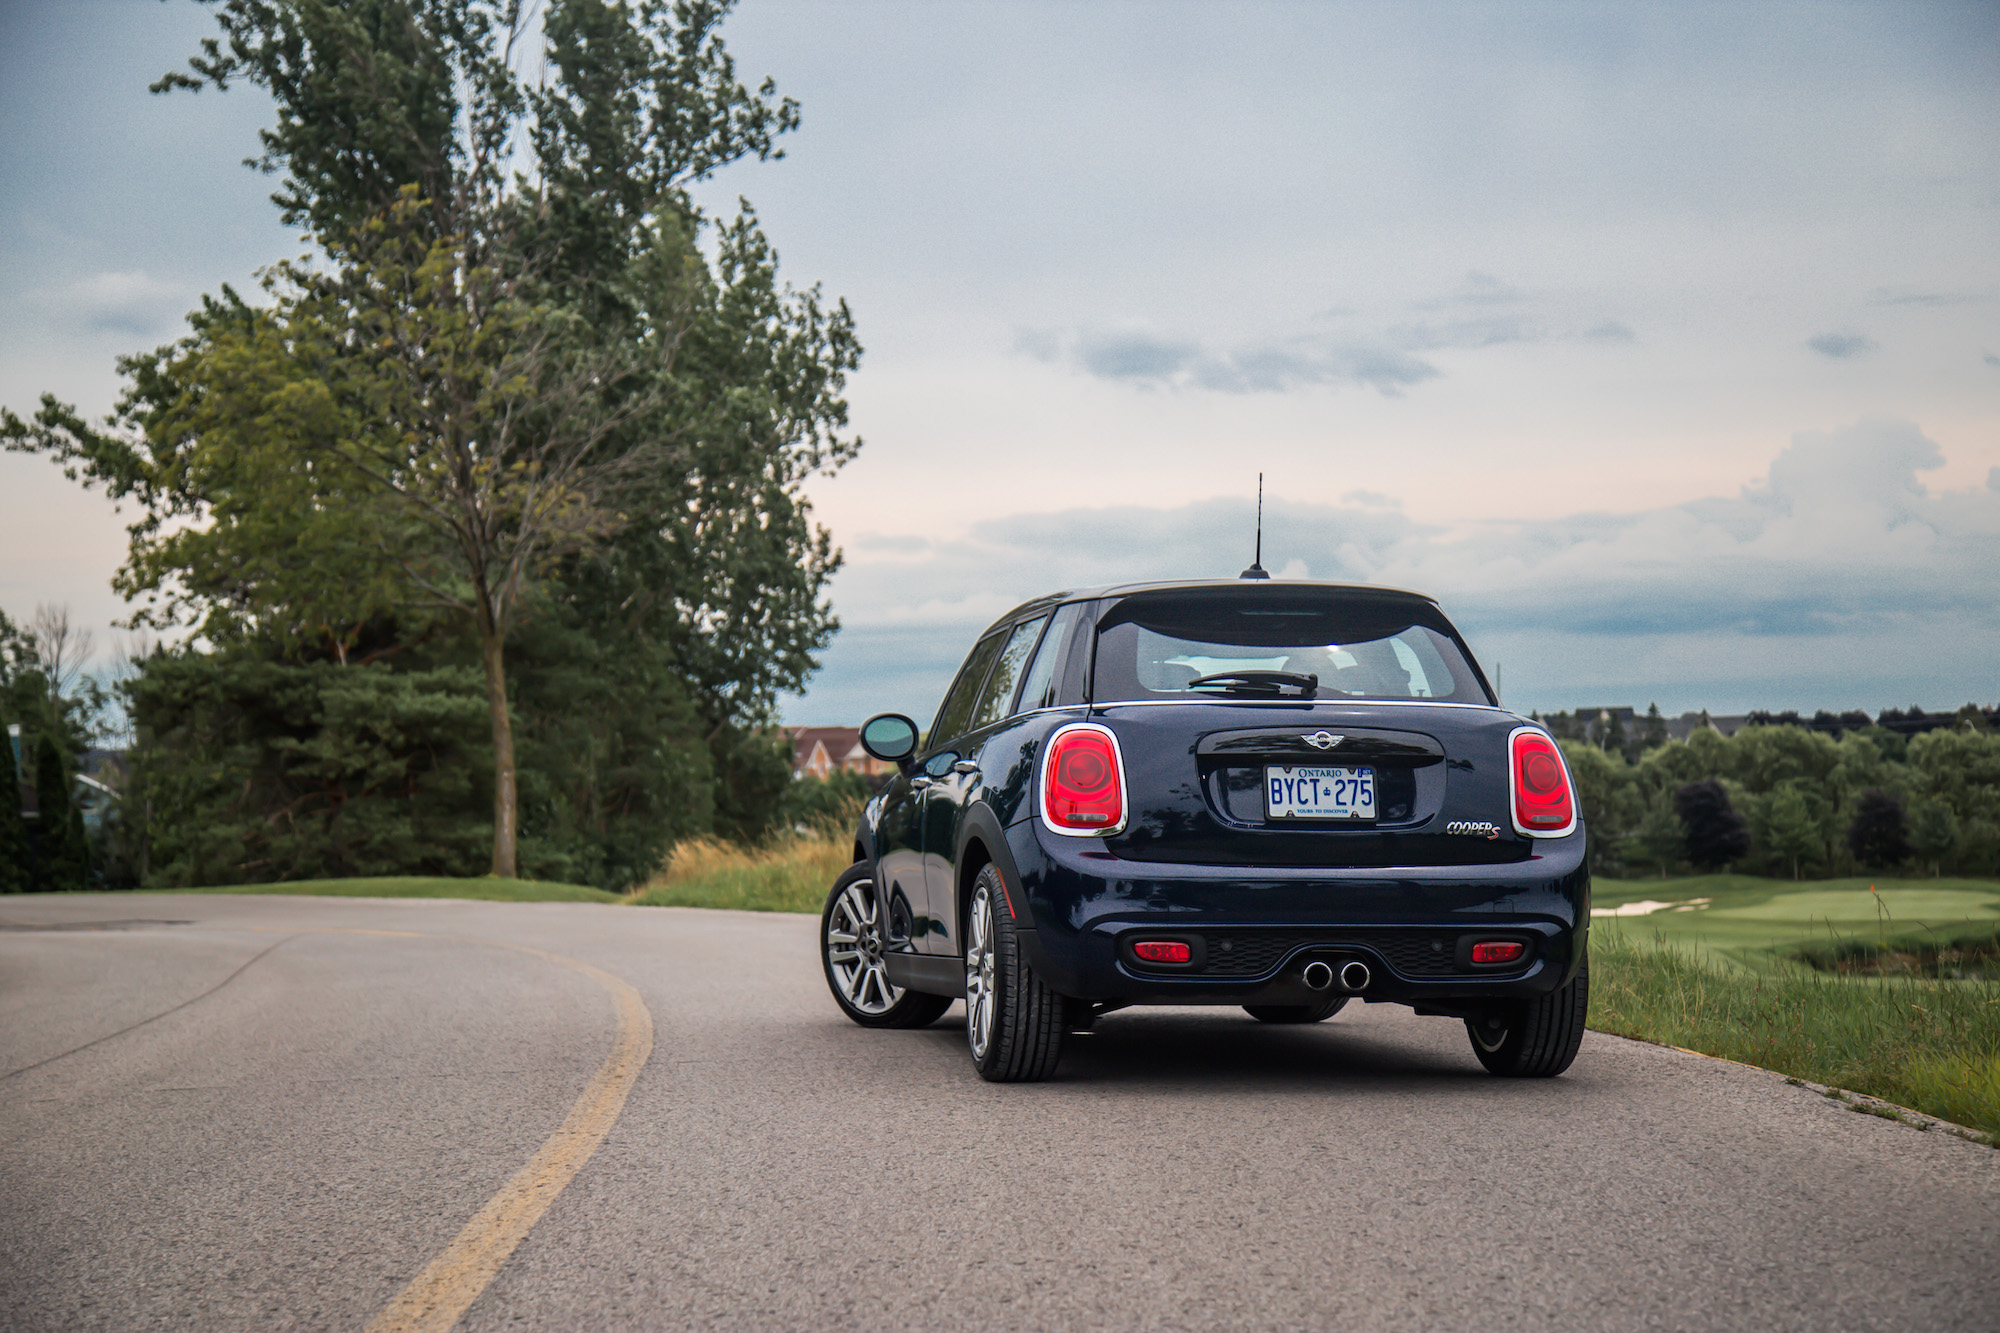 Mini Cooper Canada Price >> Review: 2017 MINI Cooper S 5-Door Seven Edition | Canadian ...